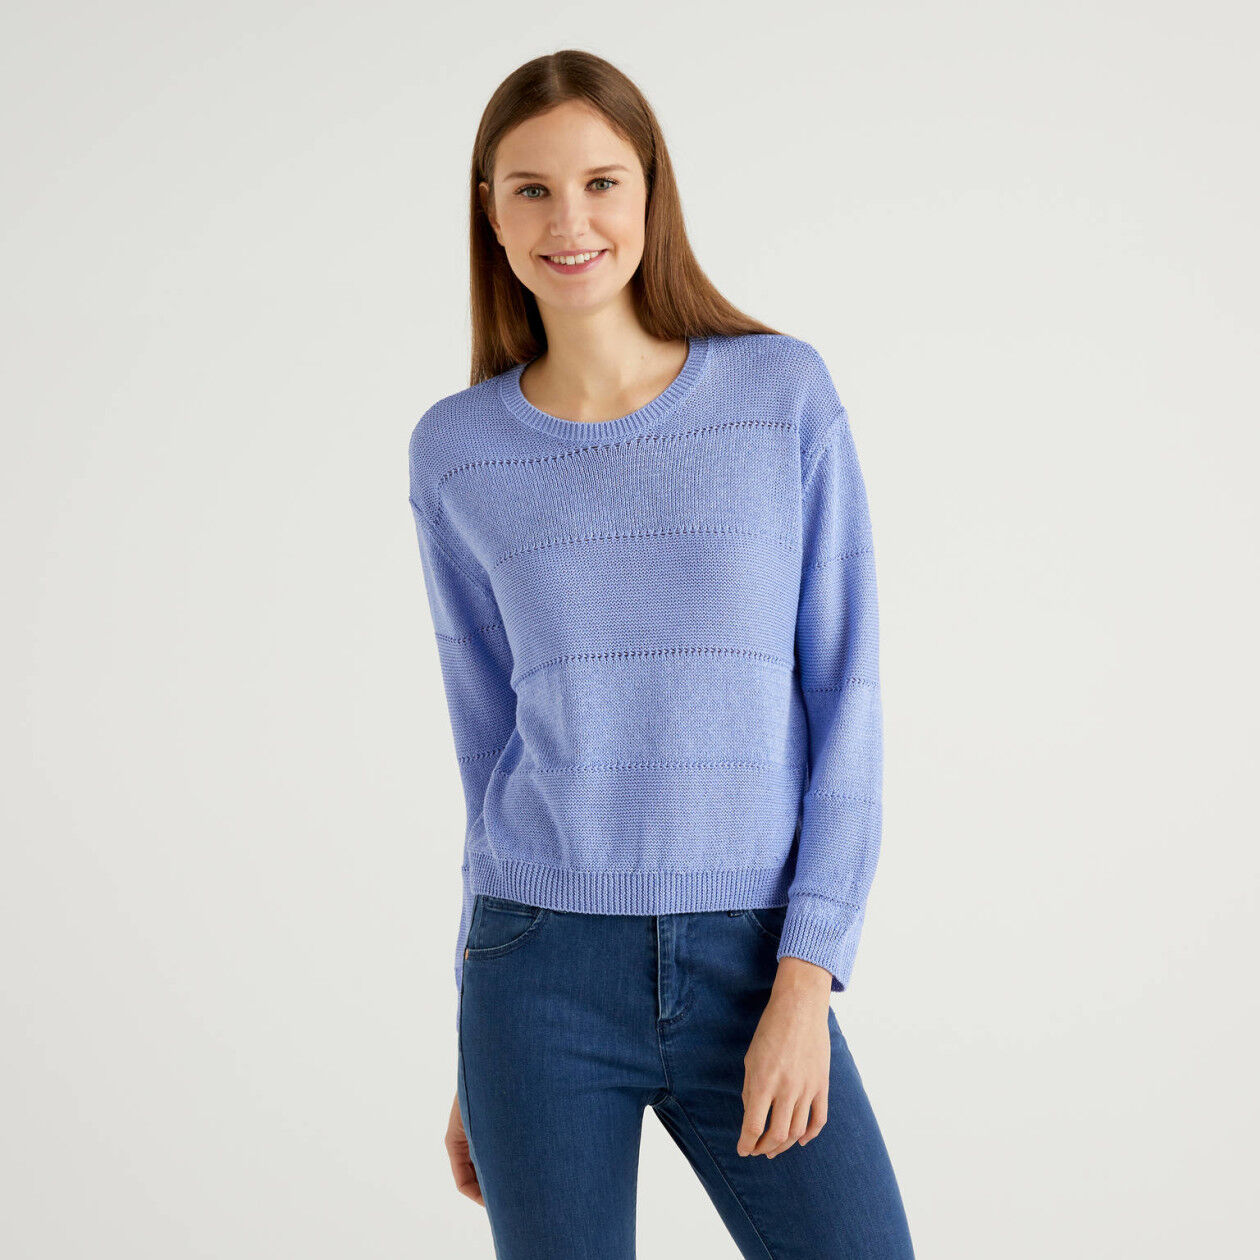 Sweater with lurex thread